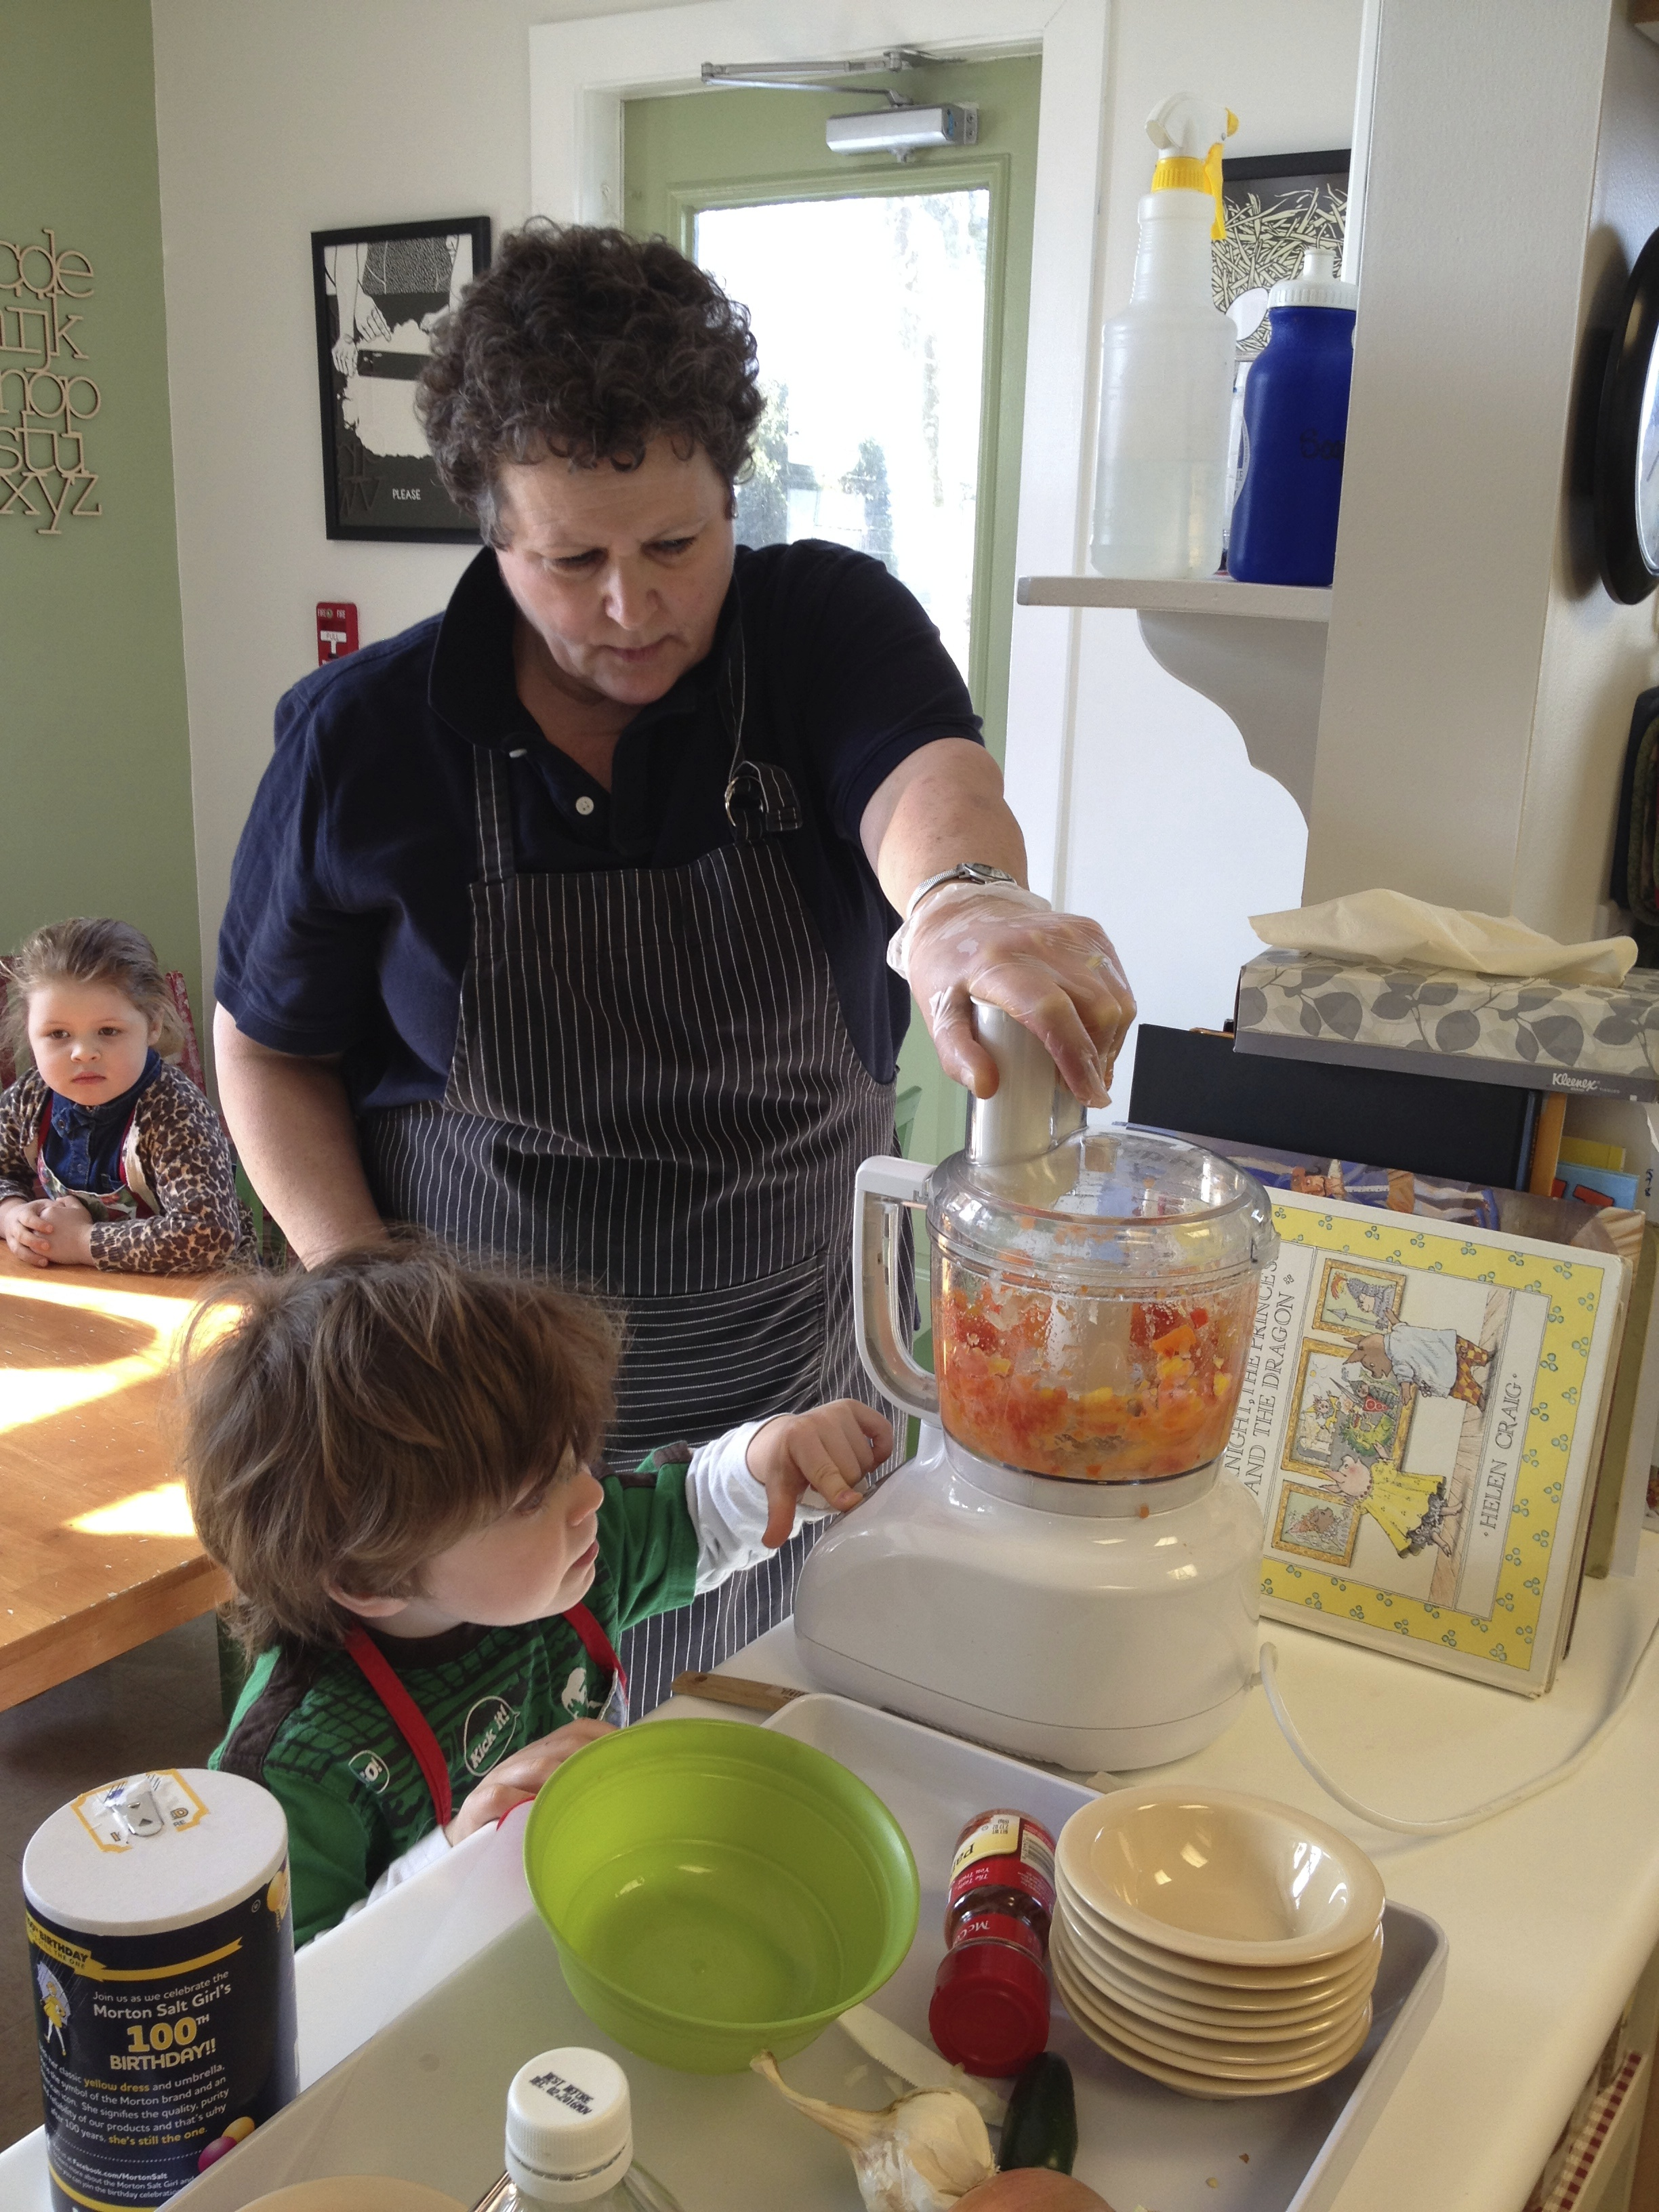 ...then we chop peppers, tomatoes and onions in the food processor...